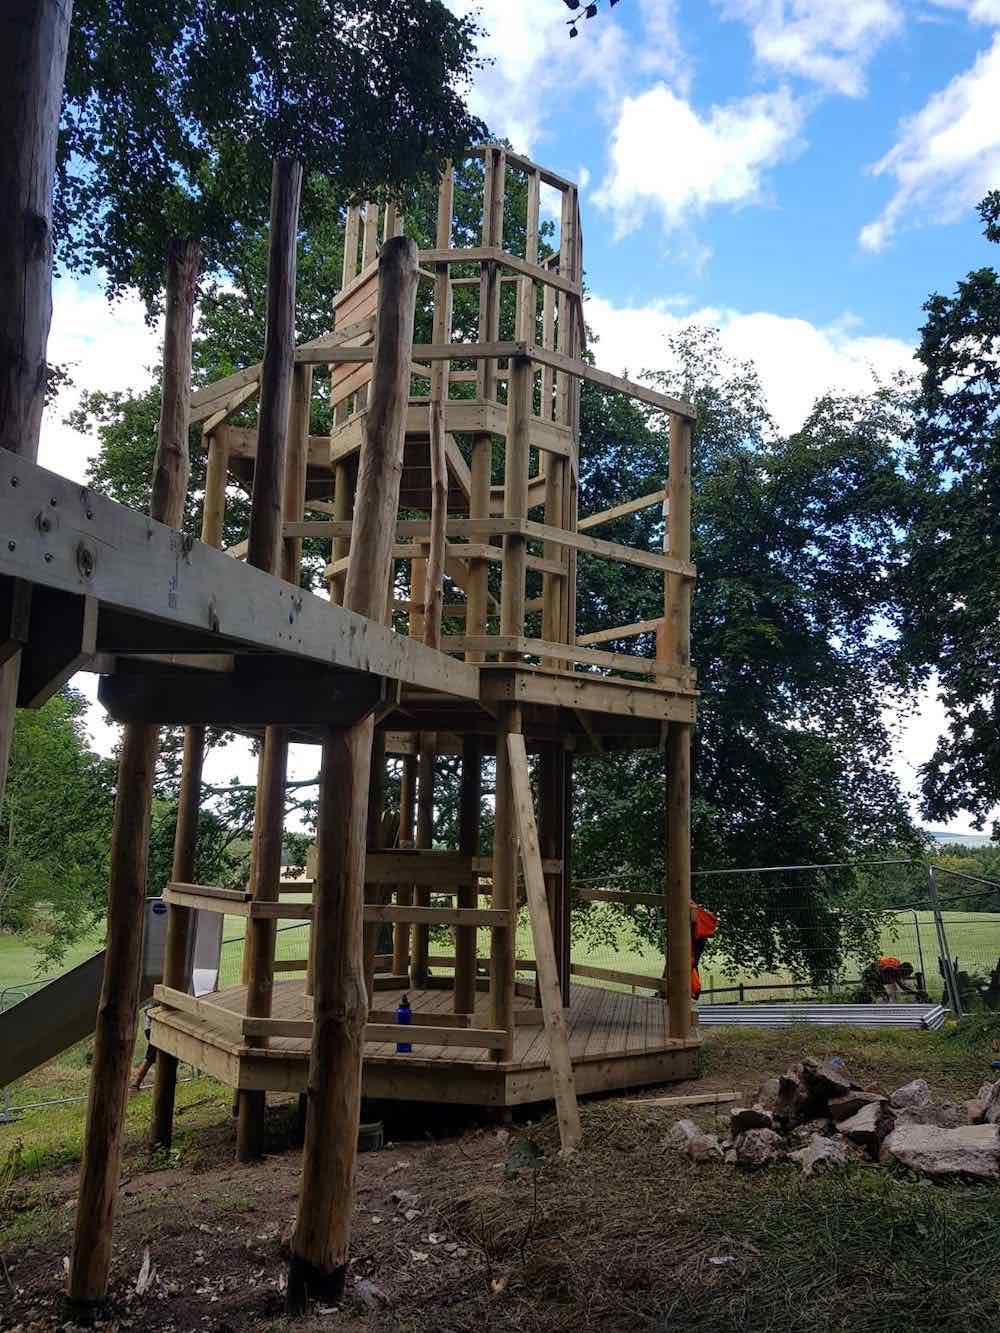 The framework for the Green Lady's Tower is complete